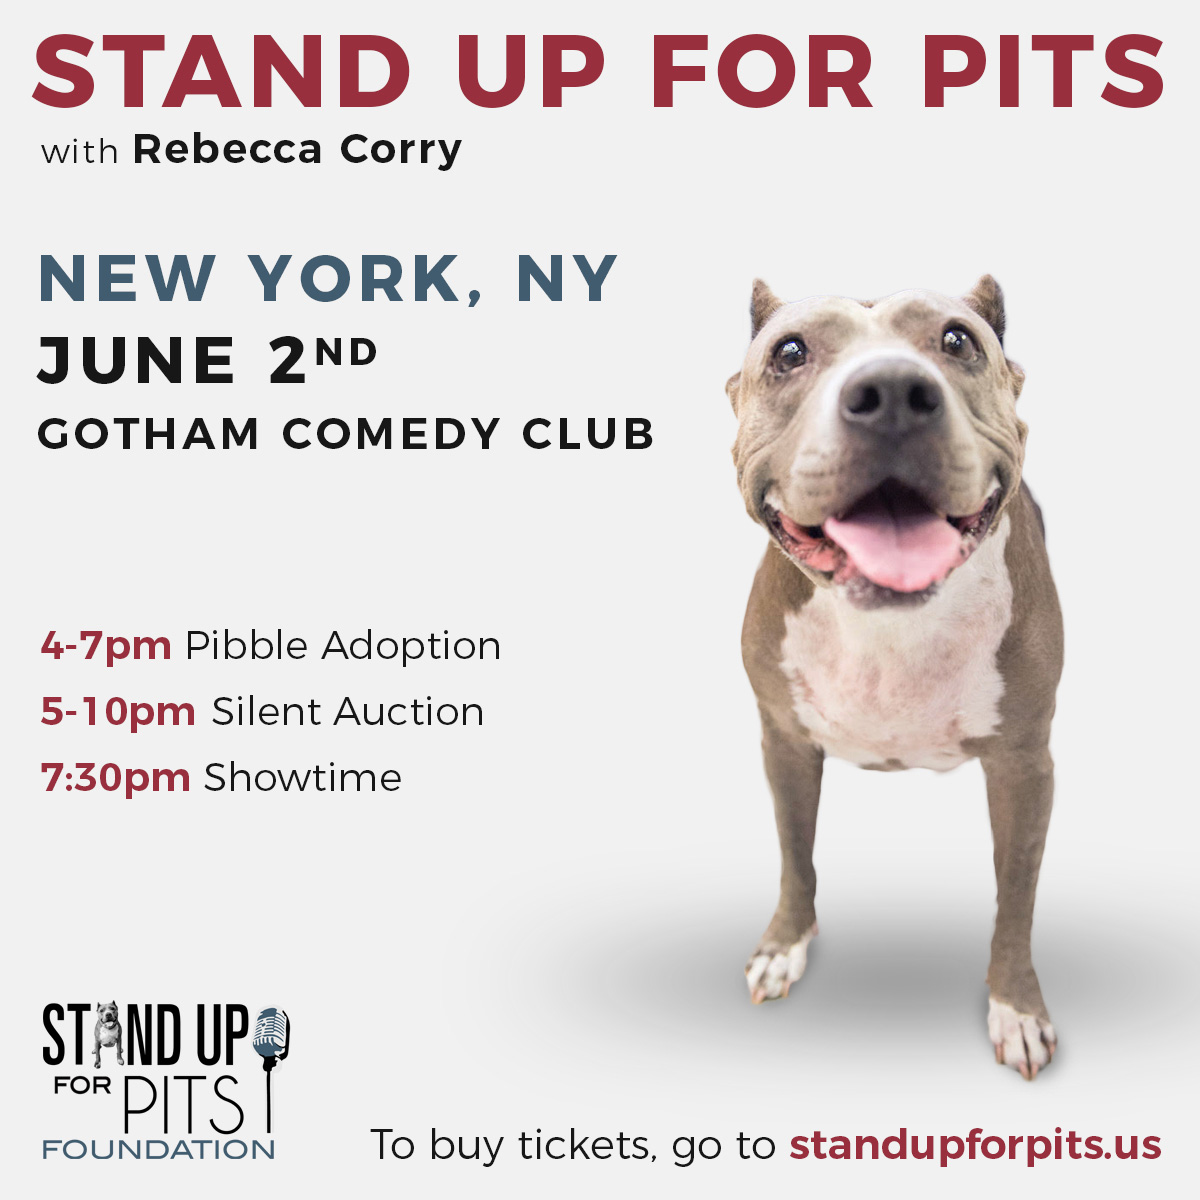 Stand Up for Pits